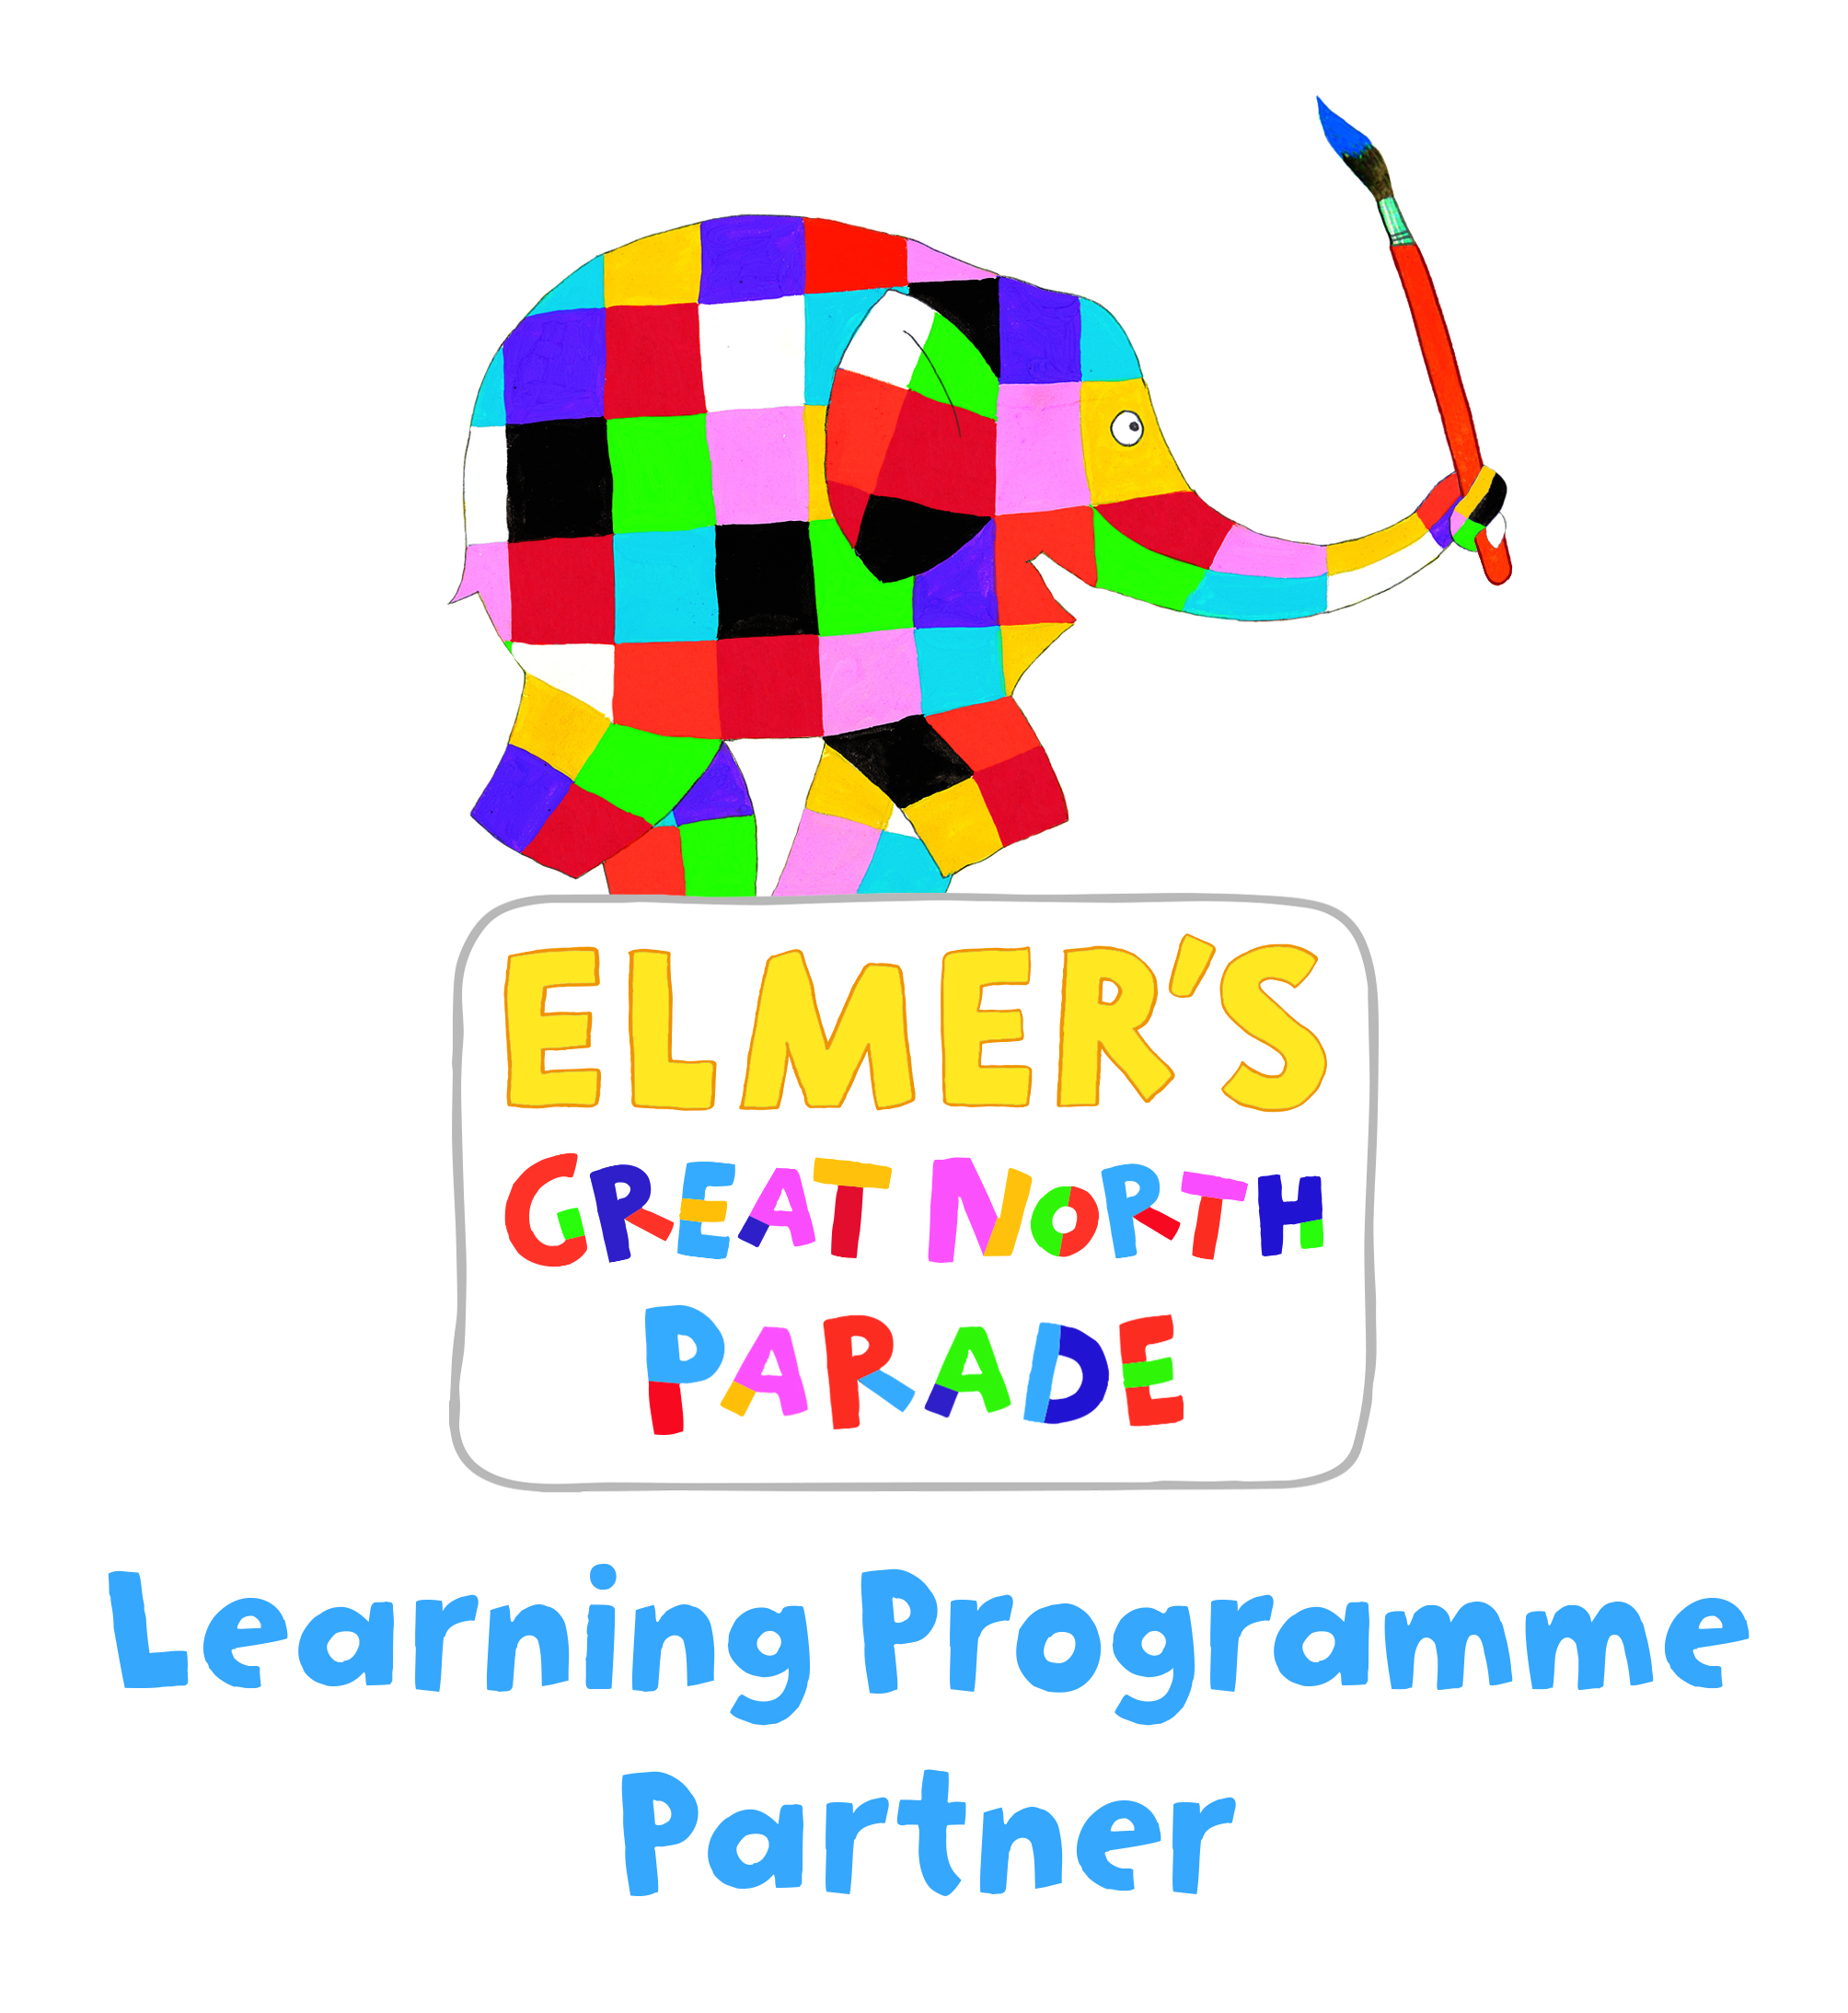 Elmers Great North Parade